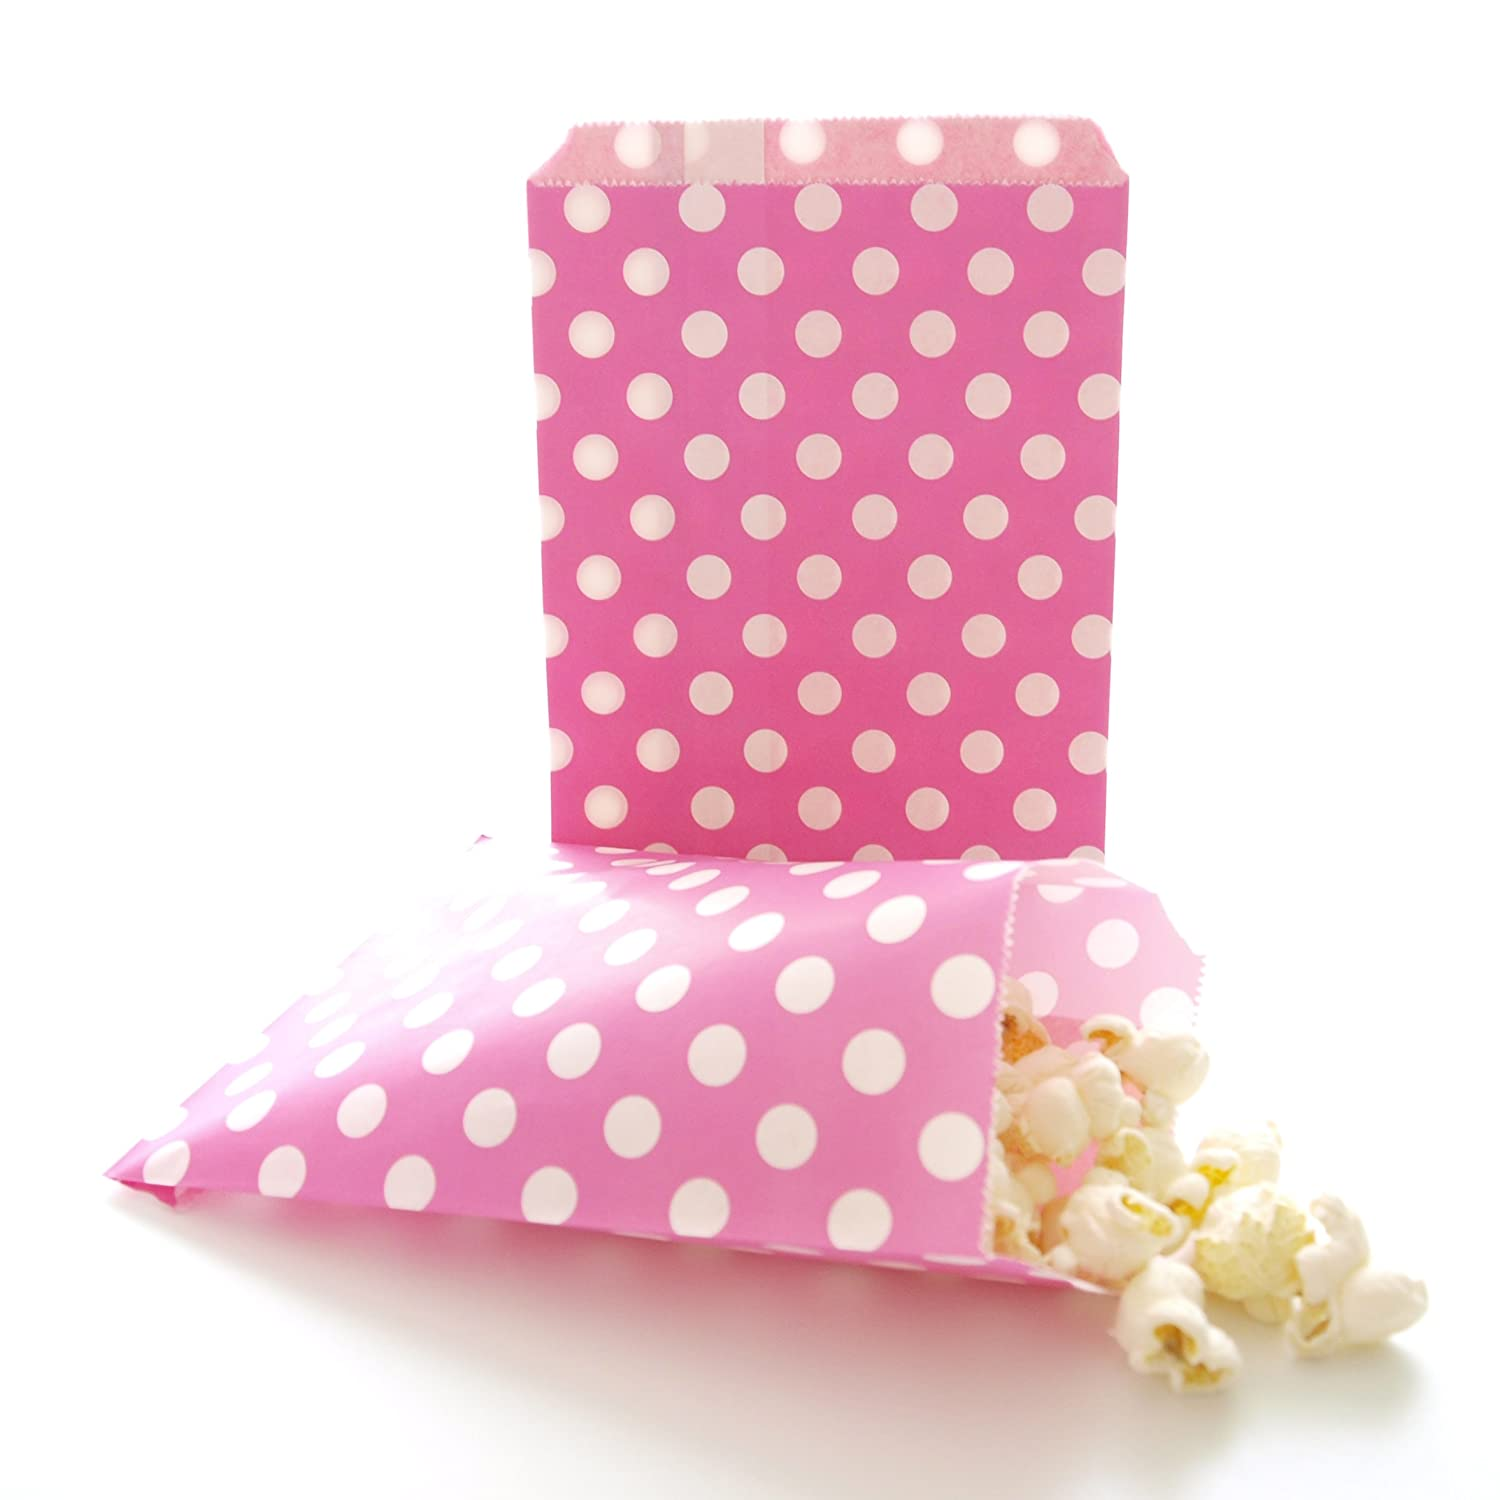 Amazon girls party bags bridal shower favor sacks valentines amazon girls party bags bridal shower favor sacks valentines day surprise goodie bags hot pink fuchsia polka dot bags 25 pack kitchen dining negle Choice Image